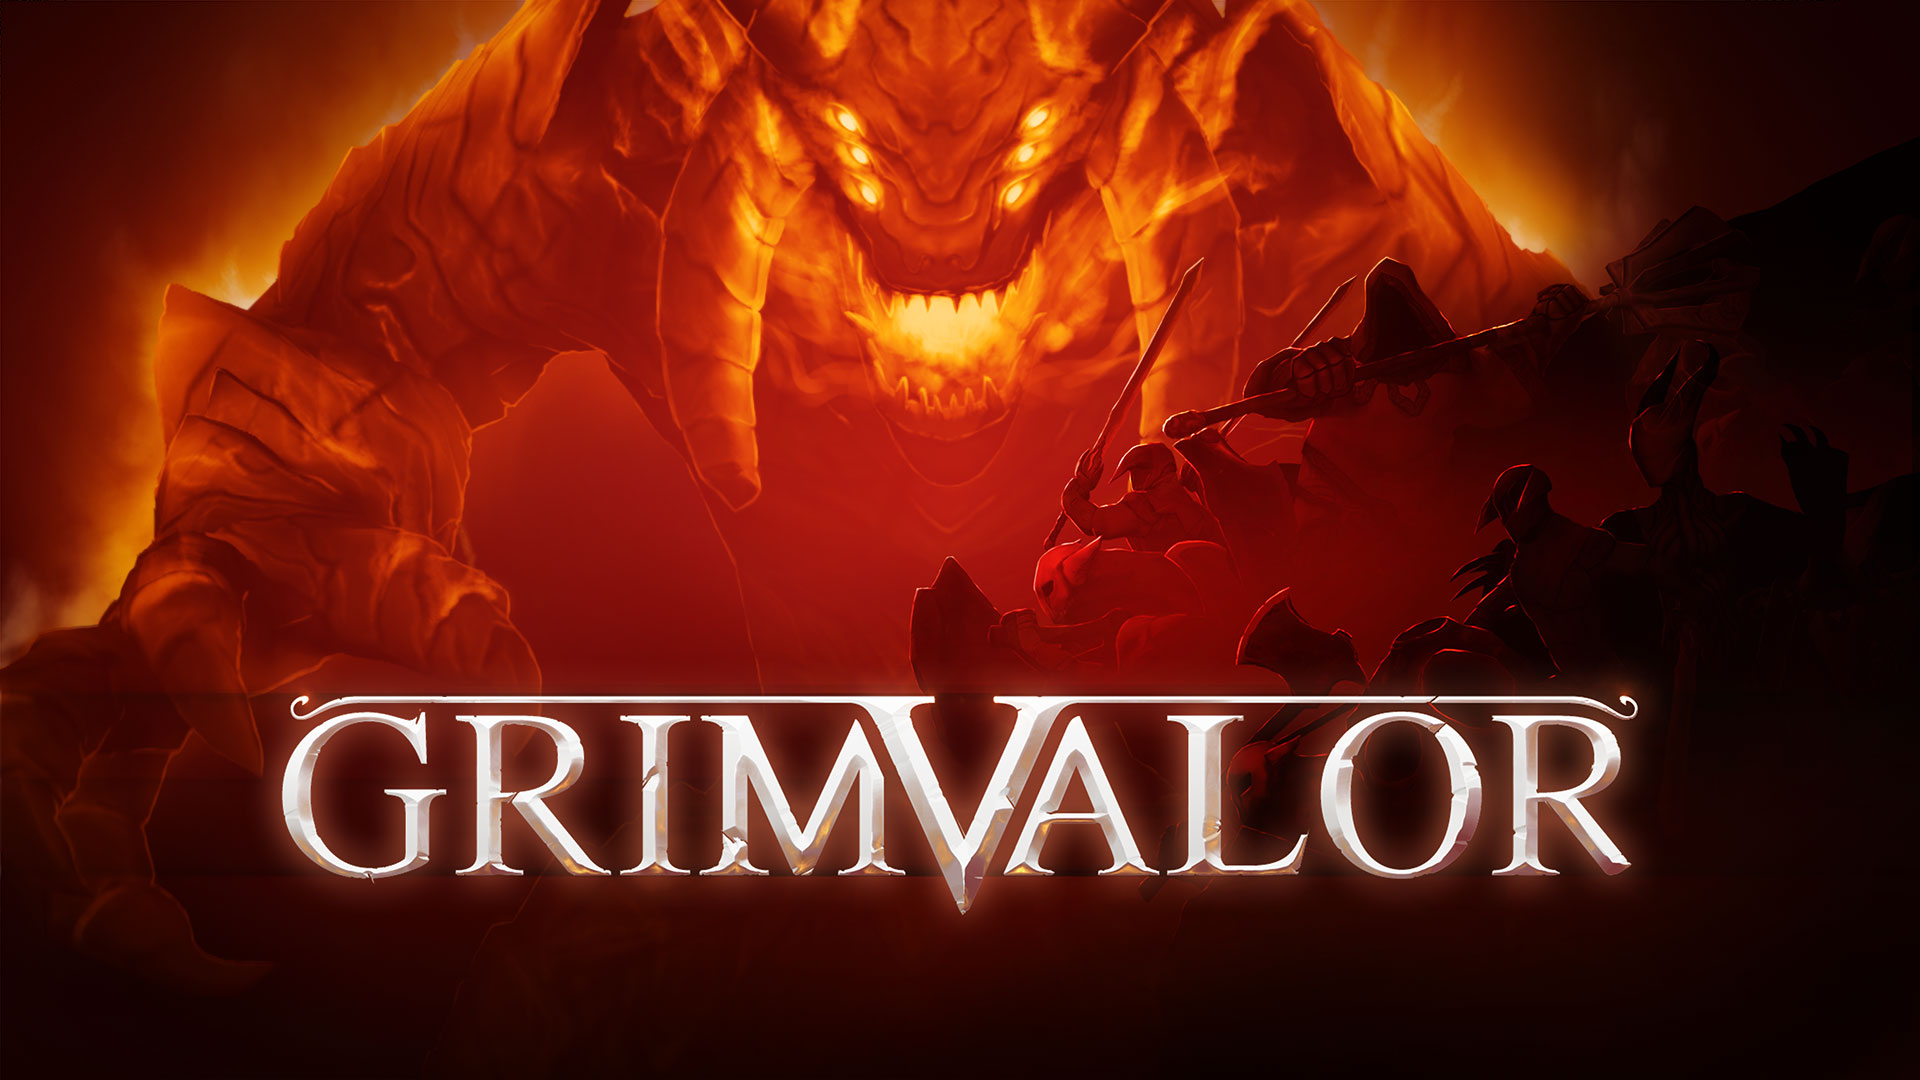 Grimvalor - the best smartphone game of the year so far